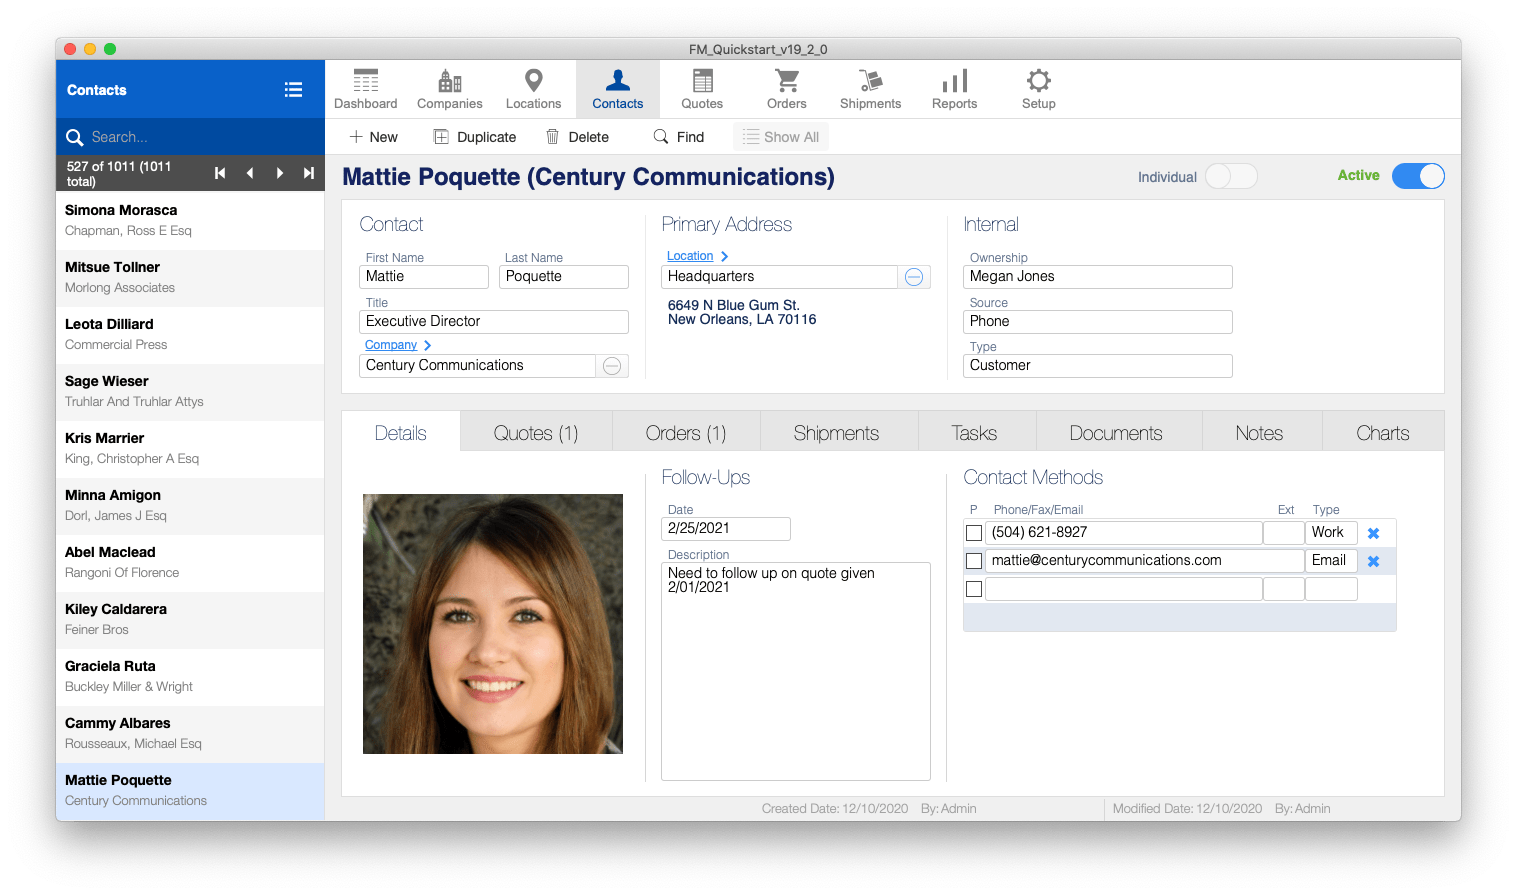 FM Quickstart Contacts screenshot